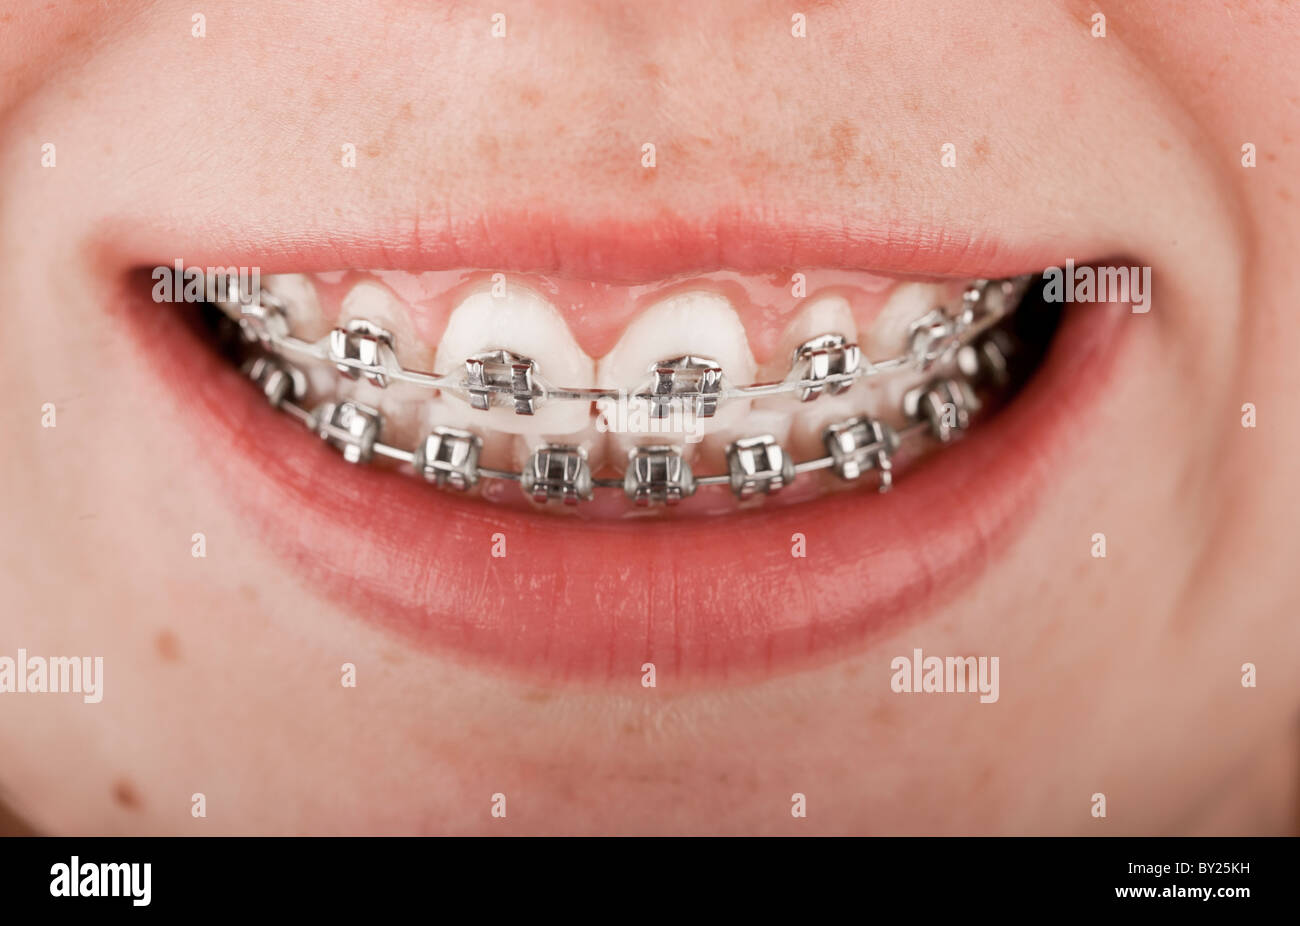 Close-up of a happy teenage girl smiling with braces - Stock Image